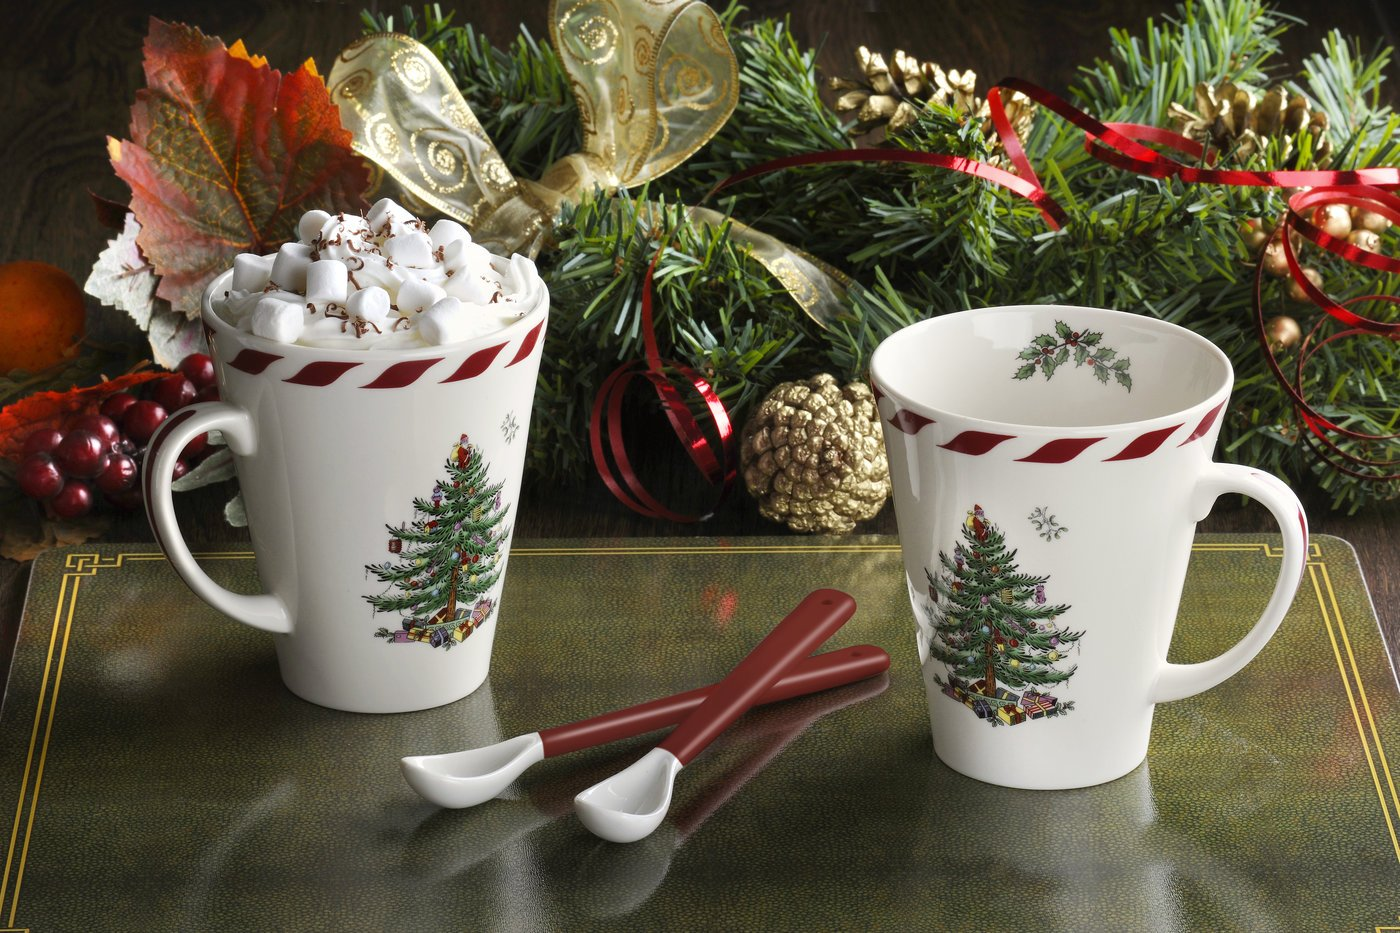 Mug has a 14-ounce capacity and the coordinating spoons are 6.75 inches in length